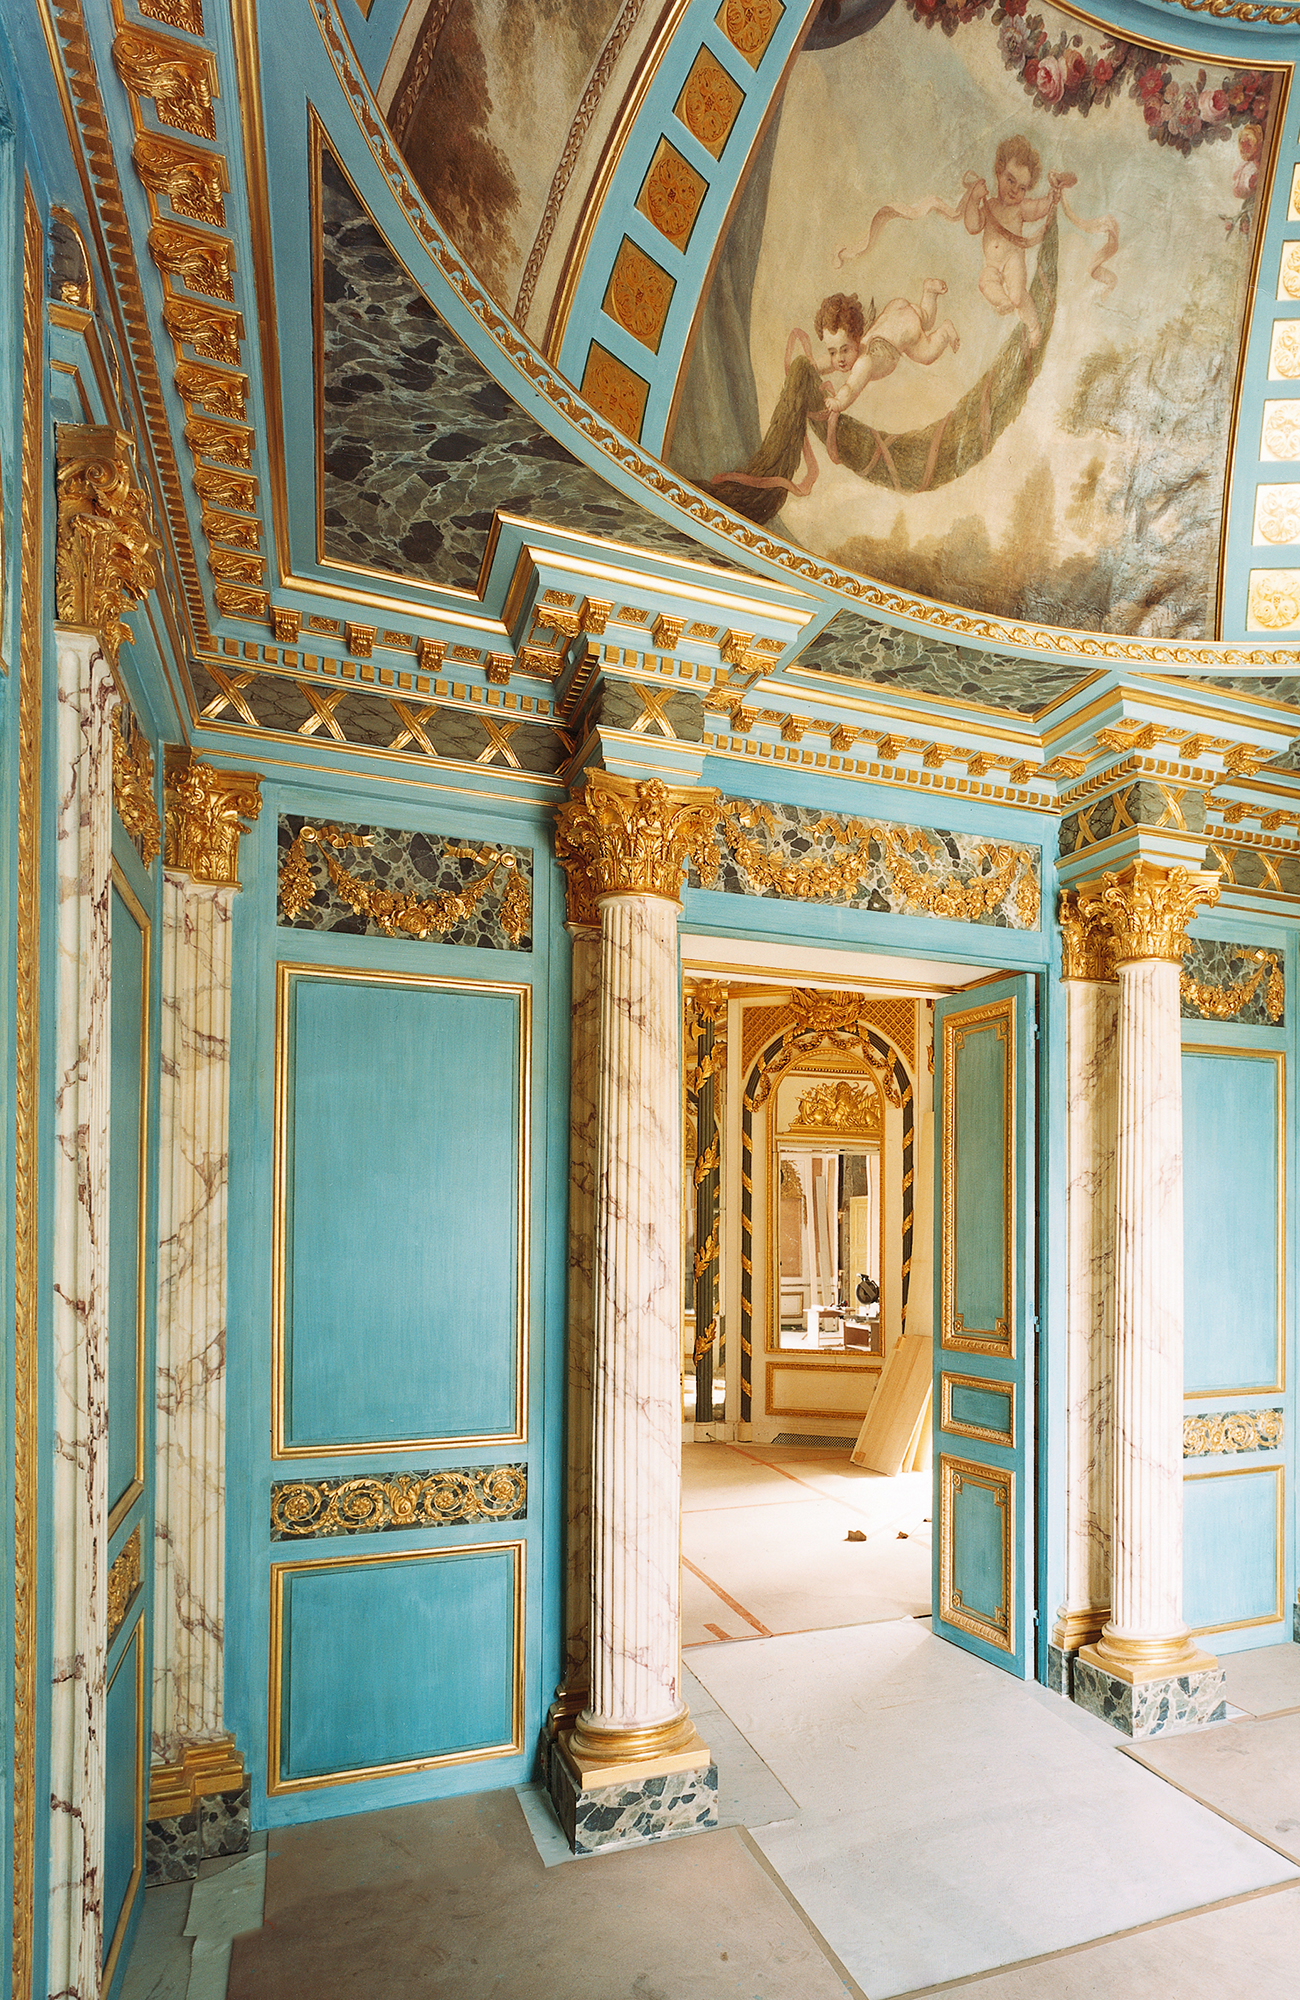 Spectacular lobby, neoclassical columns, 17th-century cupola, double door, capitals, painted blue and gold